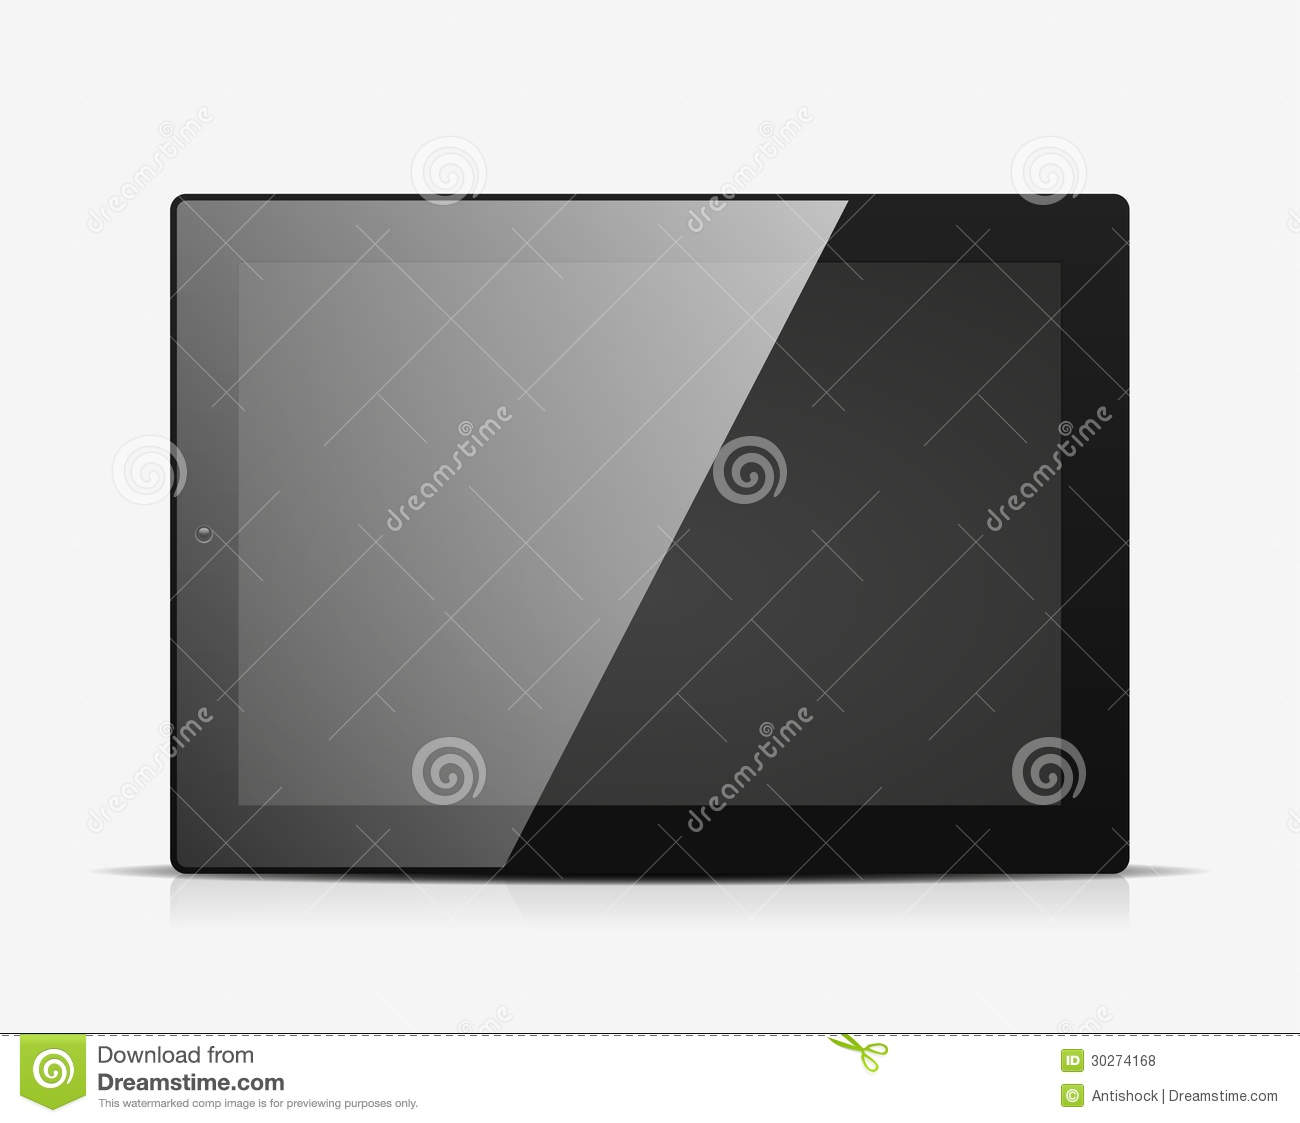 Free Vector Icon of Tablet